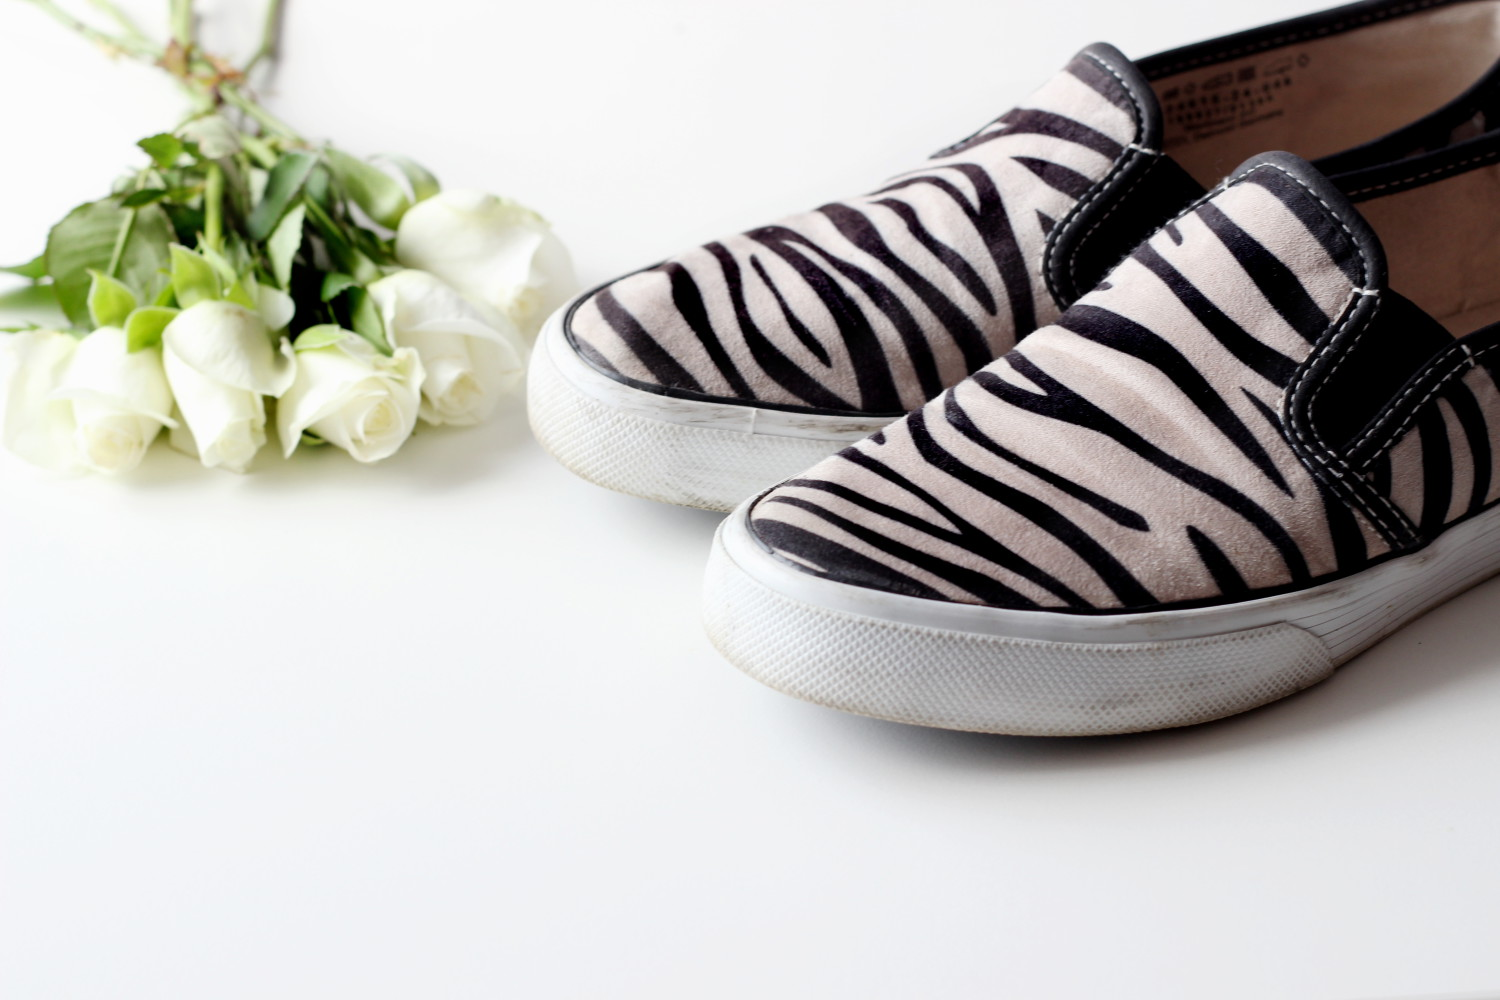 bezaubernde nana, fashionblog, modeblog, beautyblog, germany, slipper, zebra slipper, tamaris